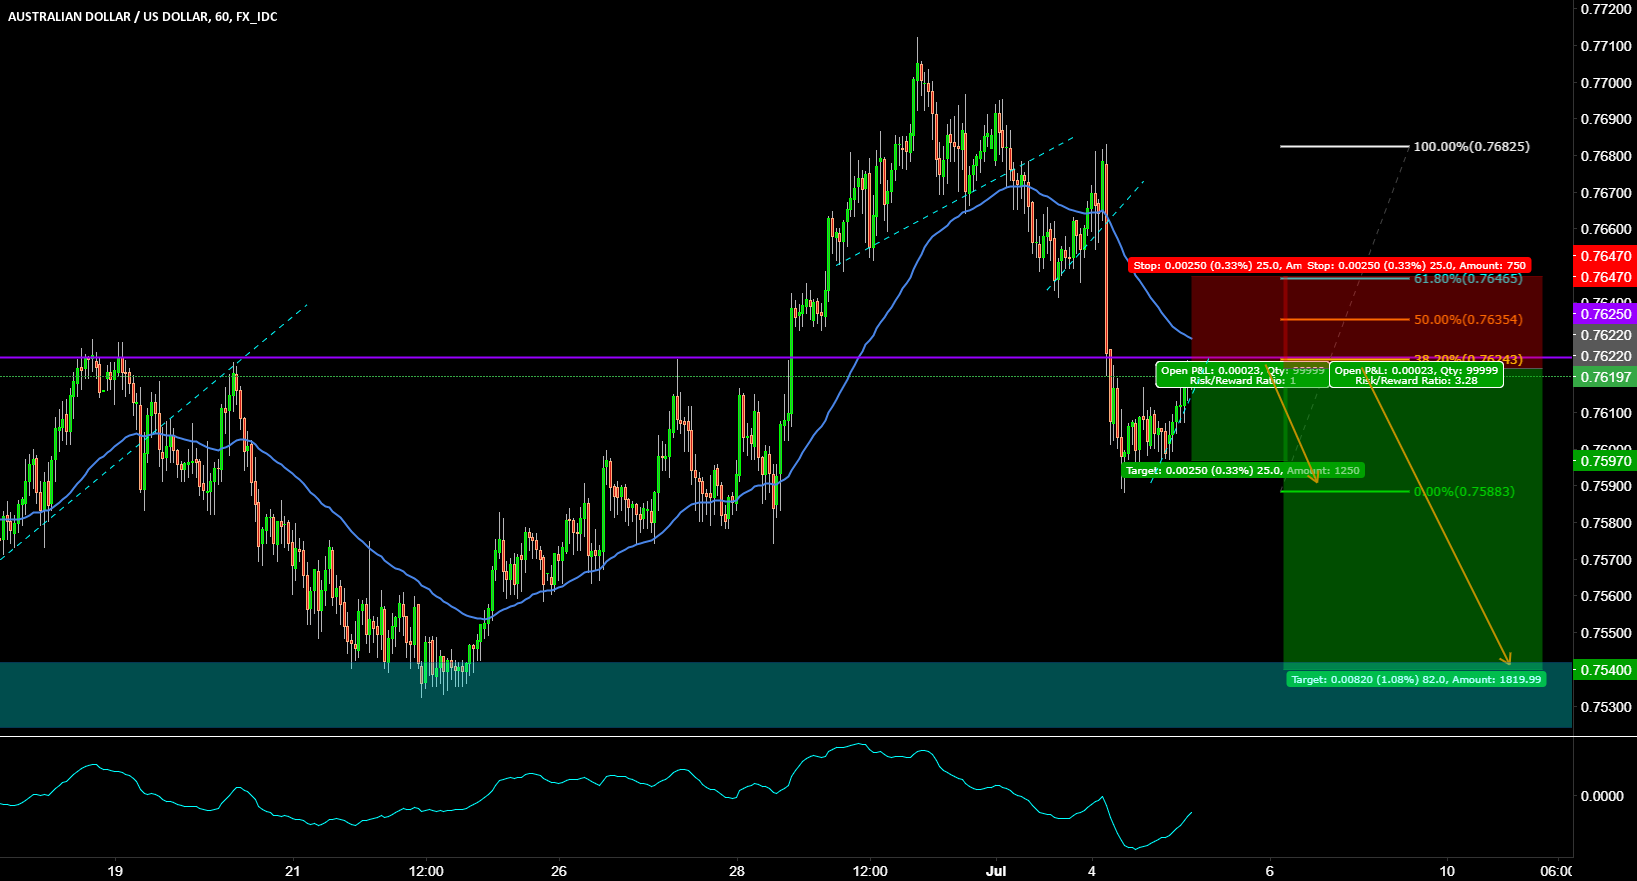 SHORT AUDUSD TO THE RECENT LOWS